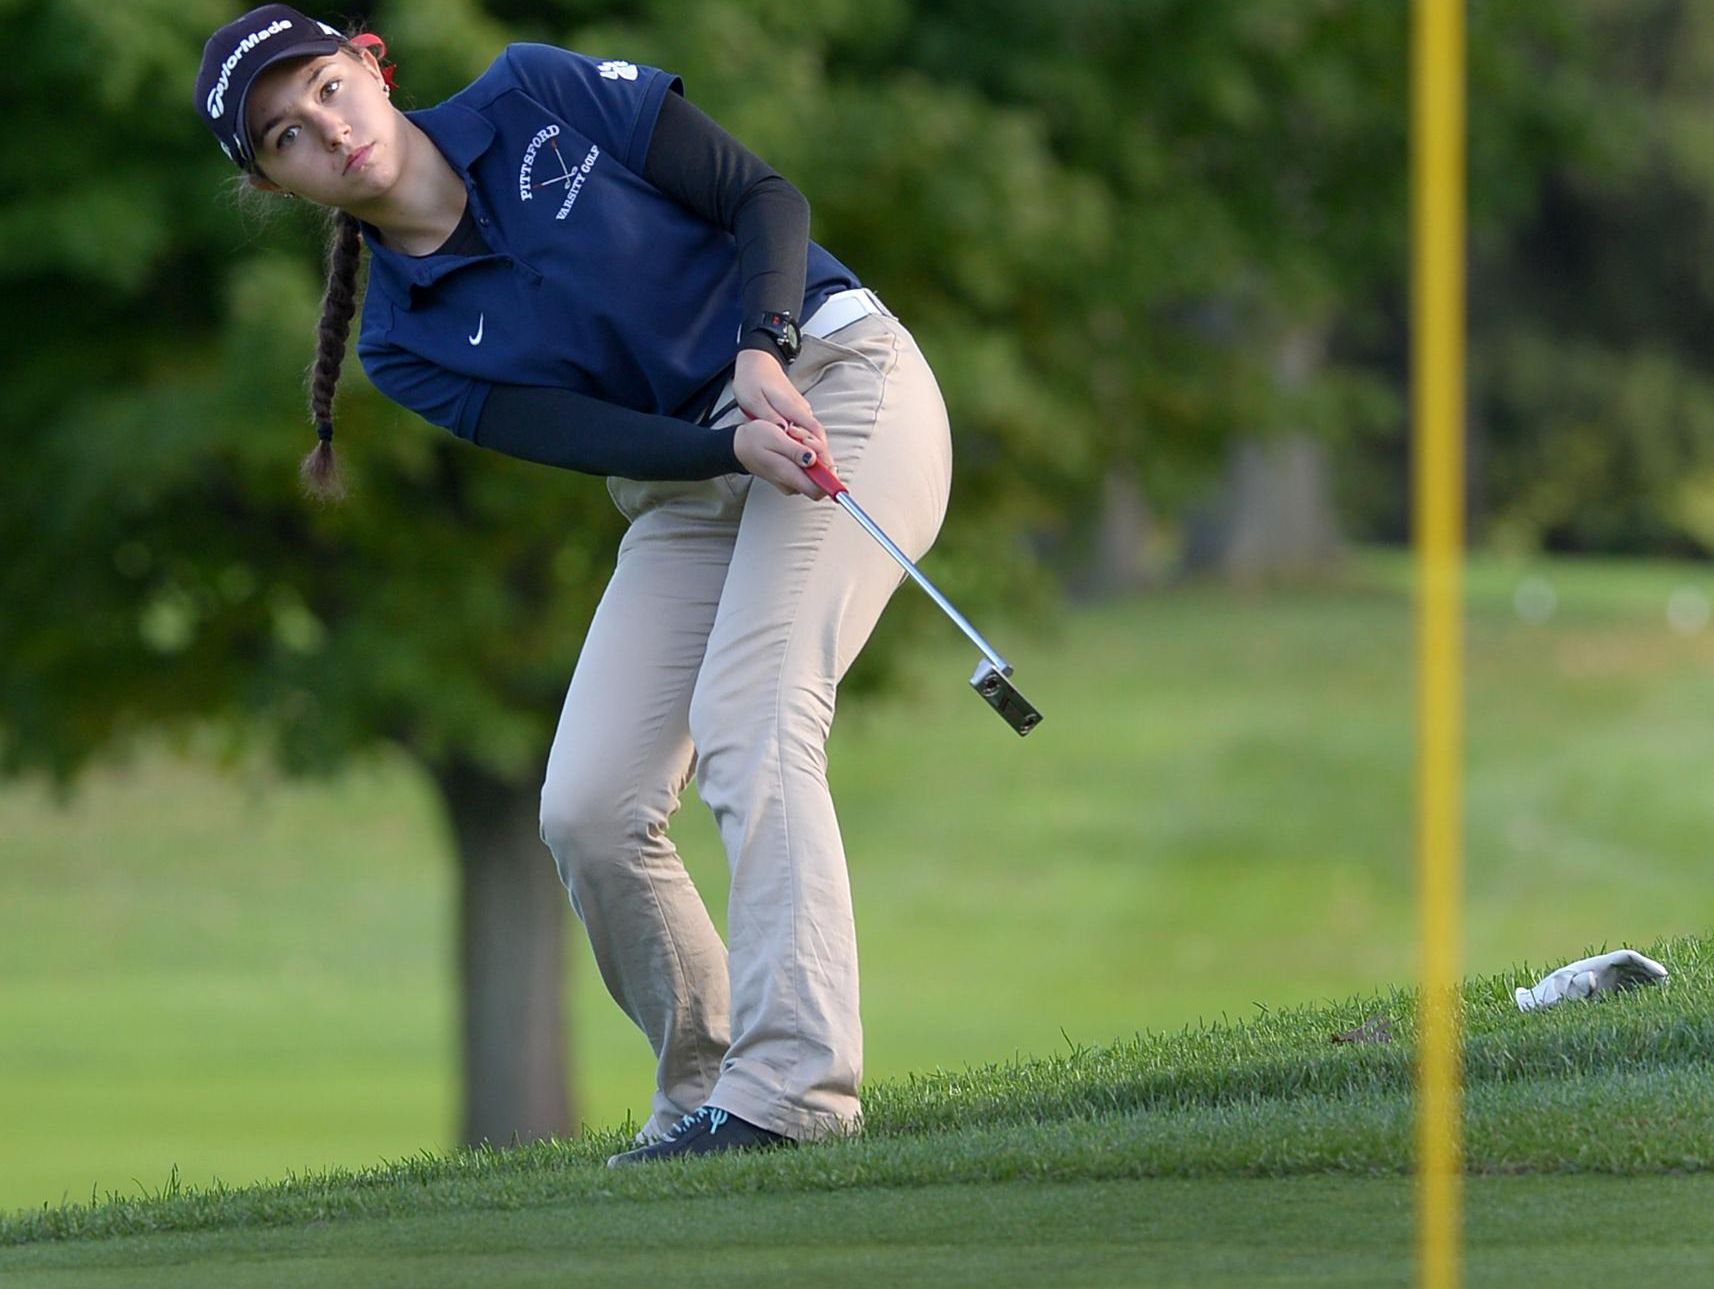 Pittsford's Sydney Ball tries to coax her putt in at No. 17 but just misses. Ball finished with an 85 to advance to states.